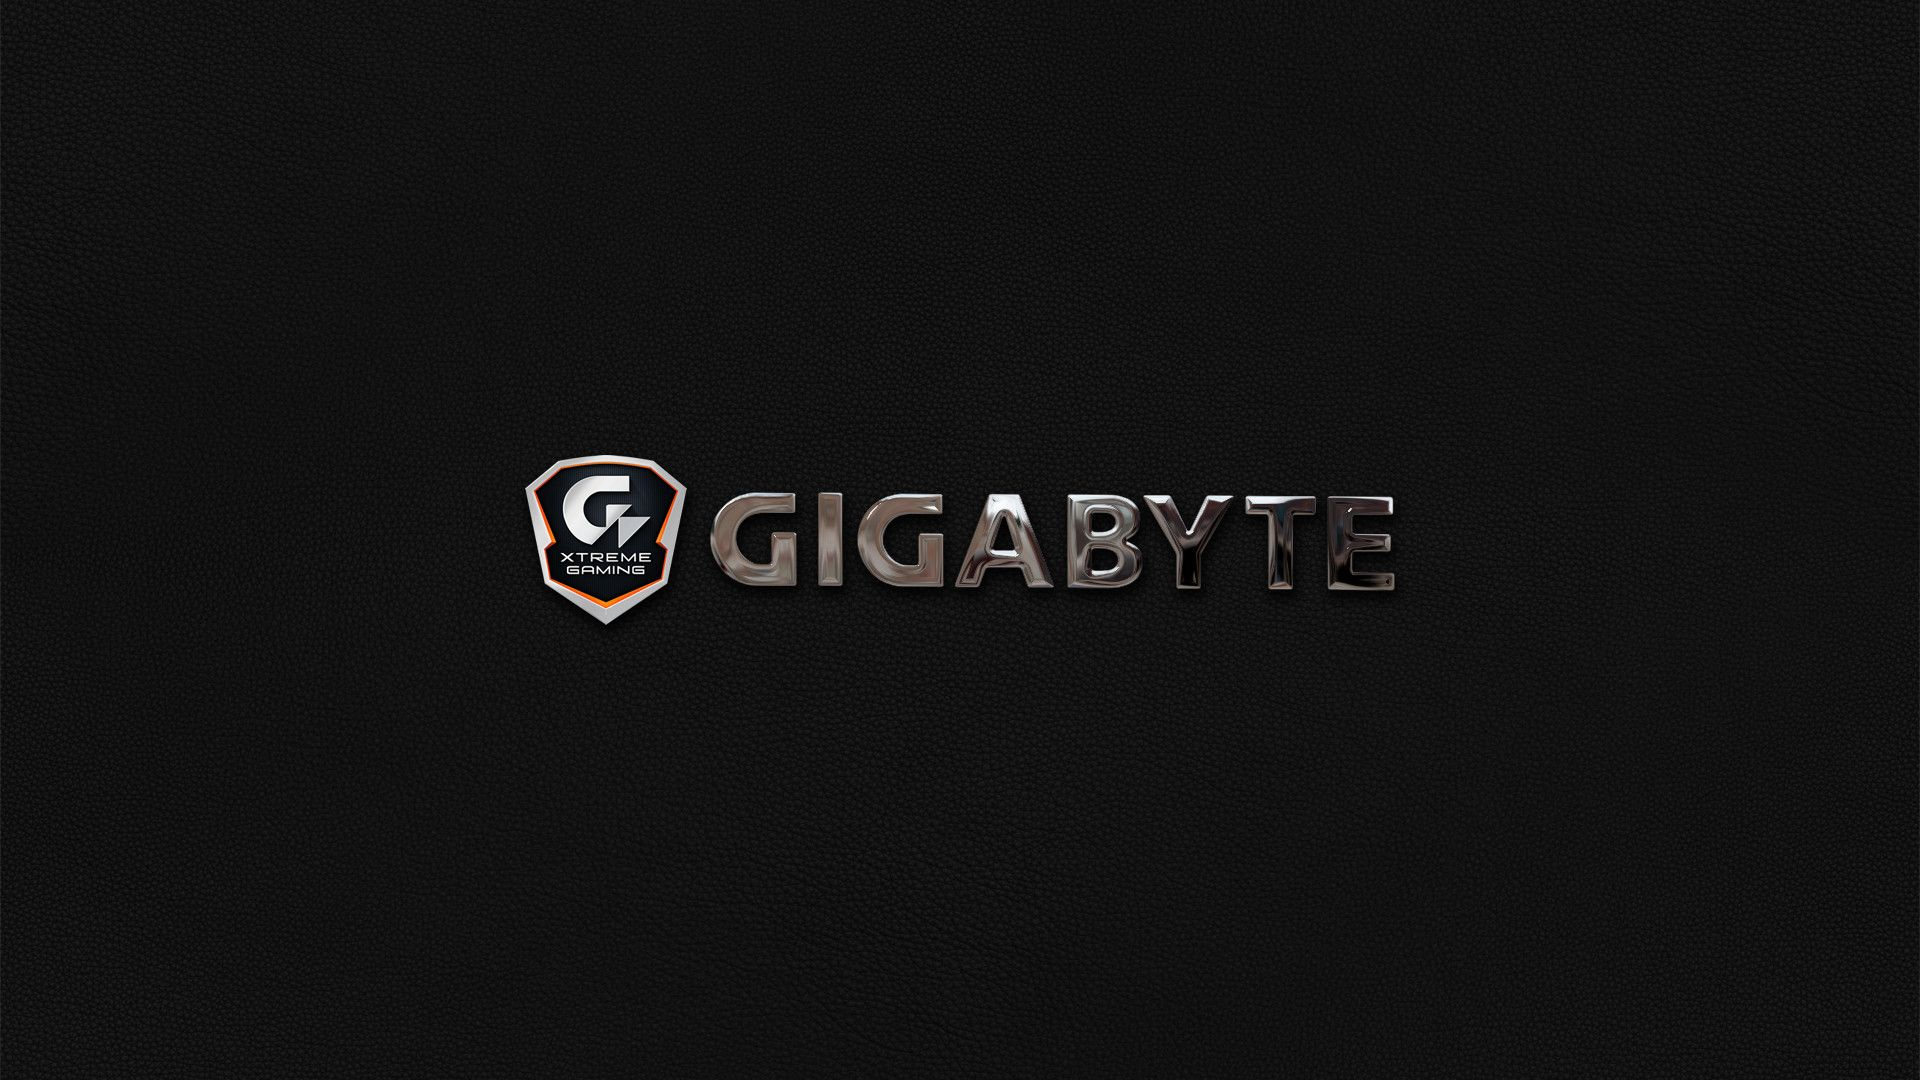 Gigabyte 4k Wallpapers Top Free Gigabyte 4k Backgrounds